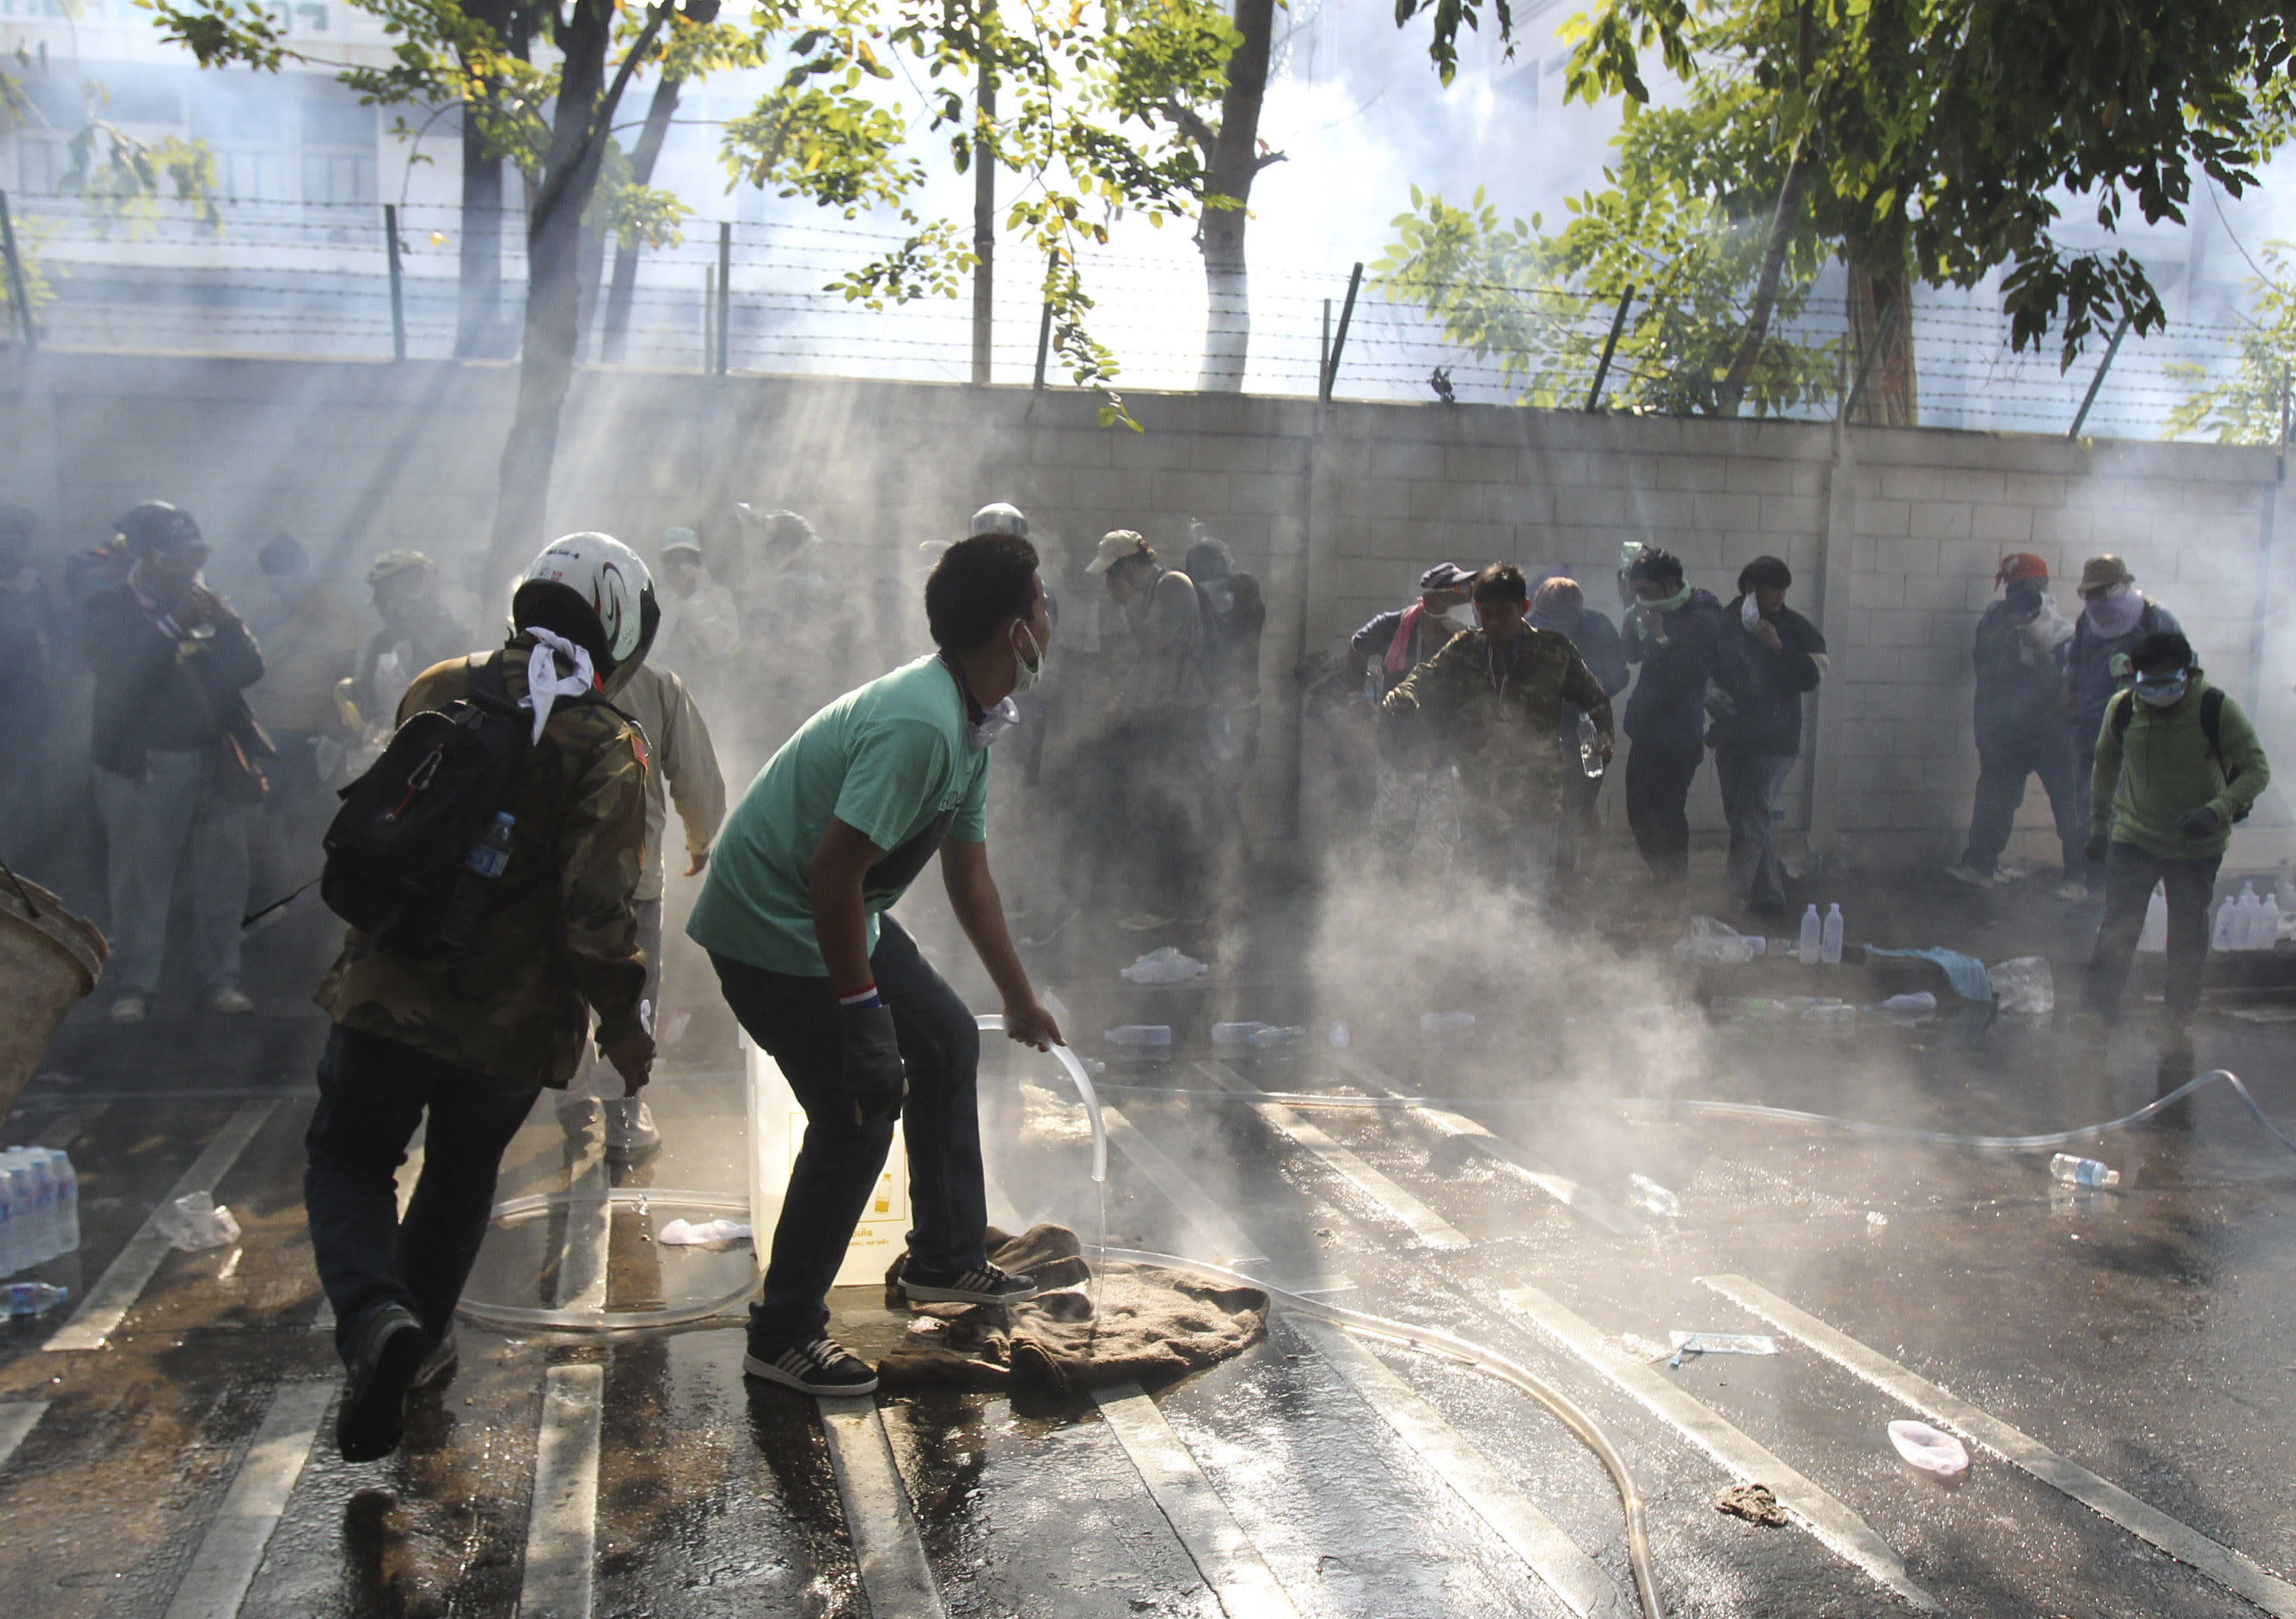 Anti-government protesters react to tear gas fired by riot police at a gymnasium in Bangkok, Thursday, Dec. 26, 2013. Officers fired tear gas and rubber bullets toward protesters trying to force their way into a sports stadium where candidates were gathering to draw lots for their position on polling papers. (AP Photo/Sakchai Lalit)